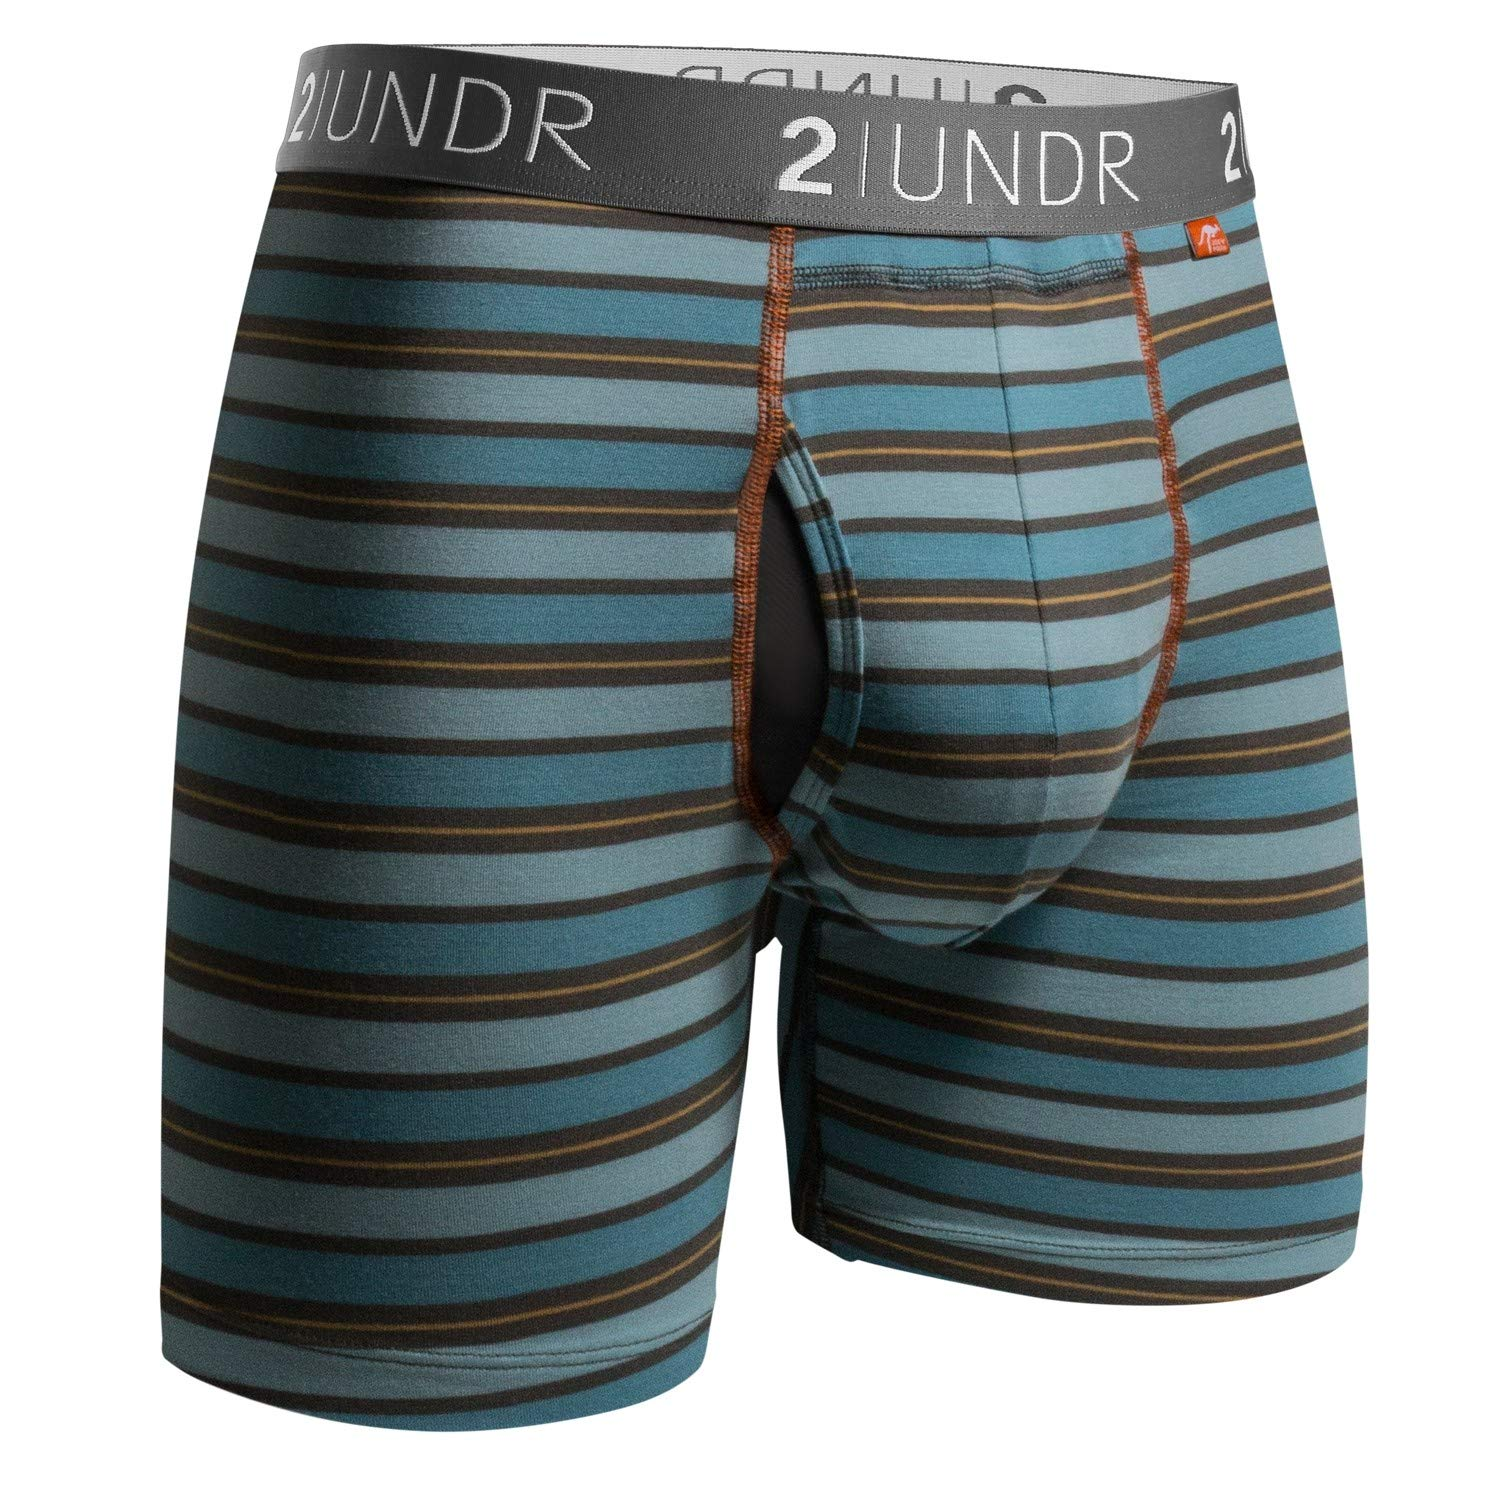 One Junior Boys Franklin and Marshall 2 Pack Trunk Boxer Shorts in Black Grey